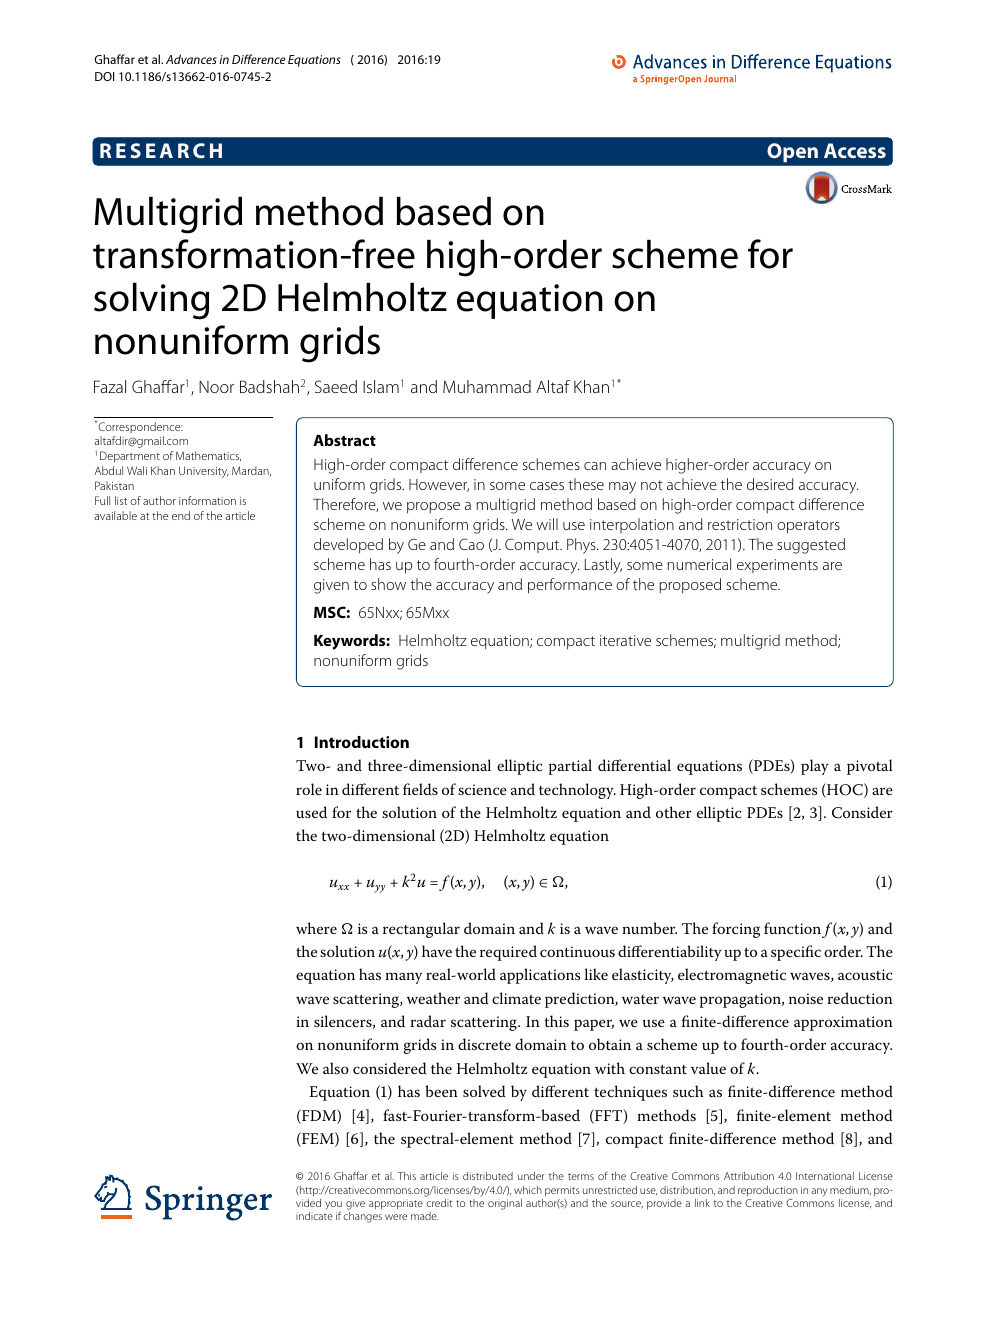 Multigrid method based on transformation-free high-order